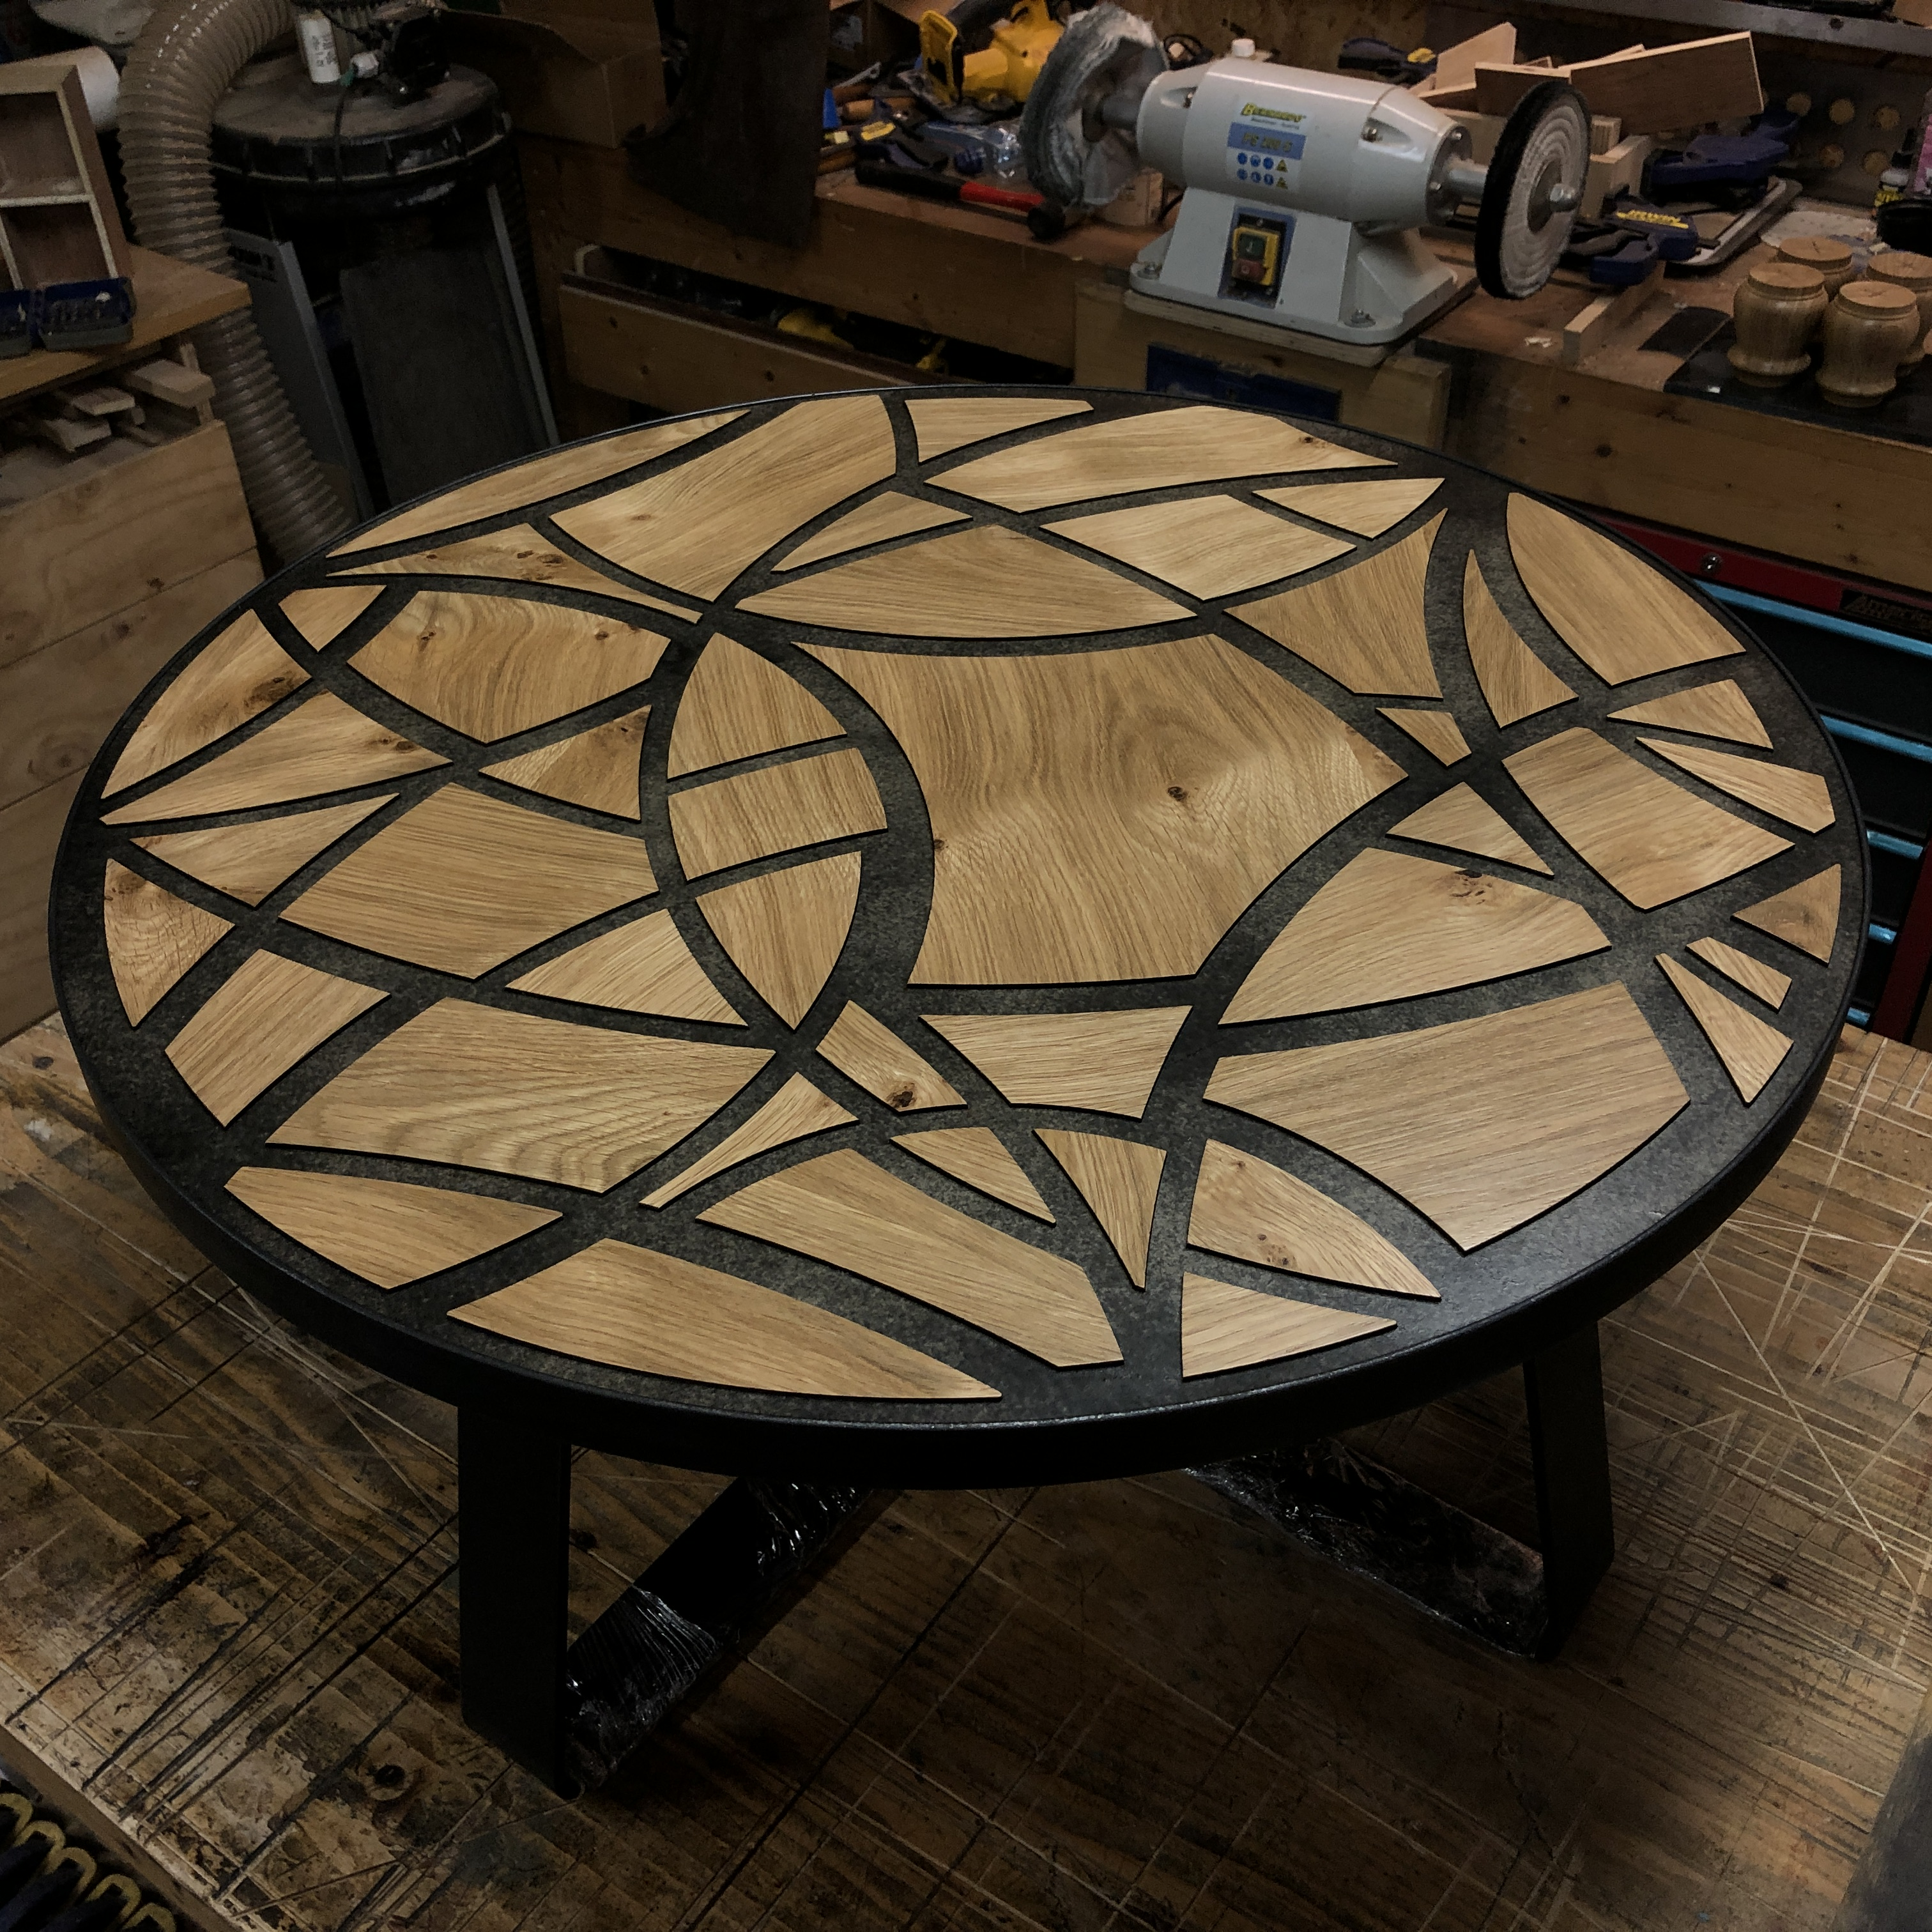 Round fretwork table by Brendan O'Donnell Design